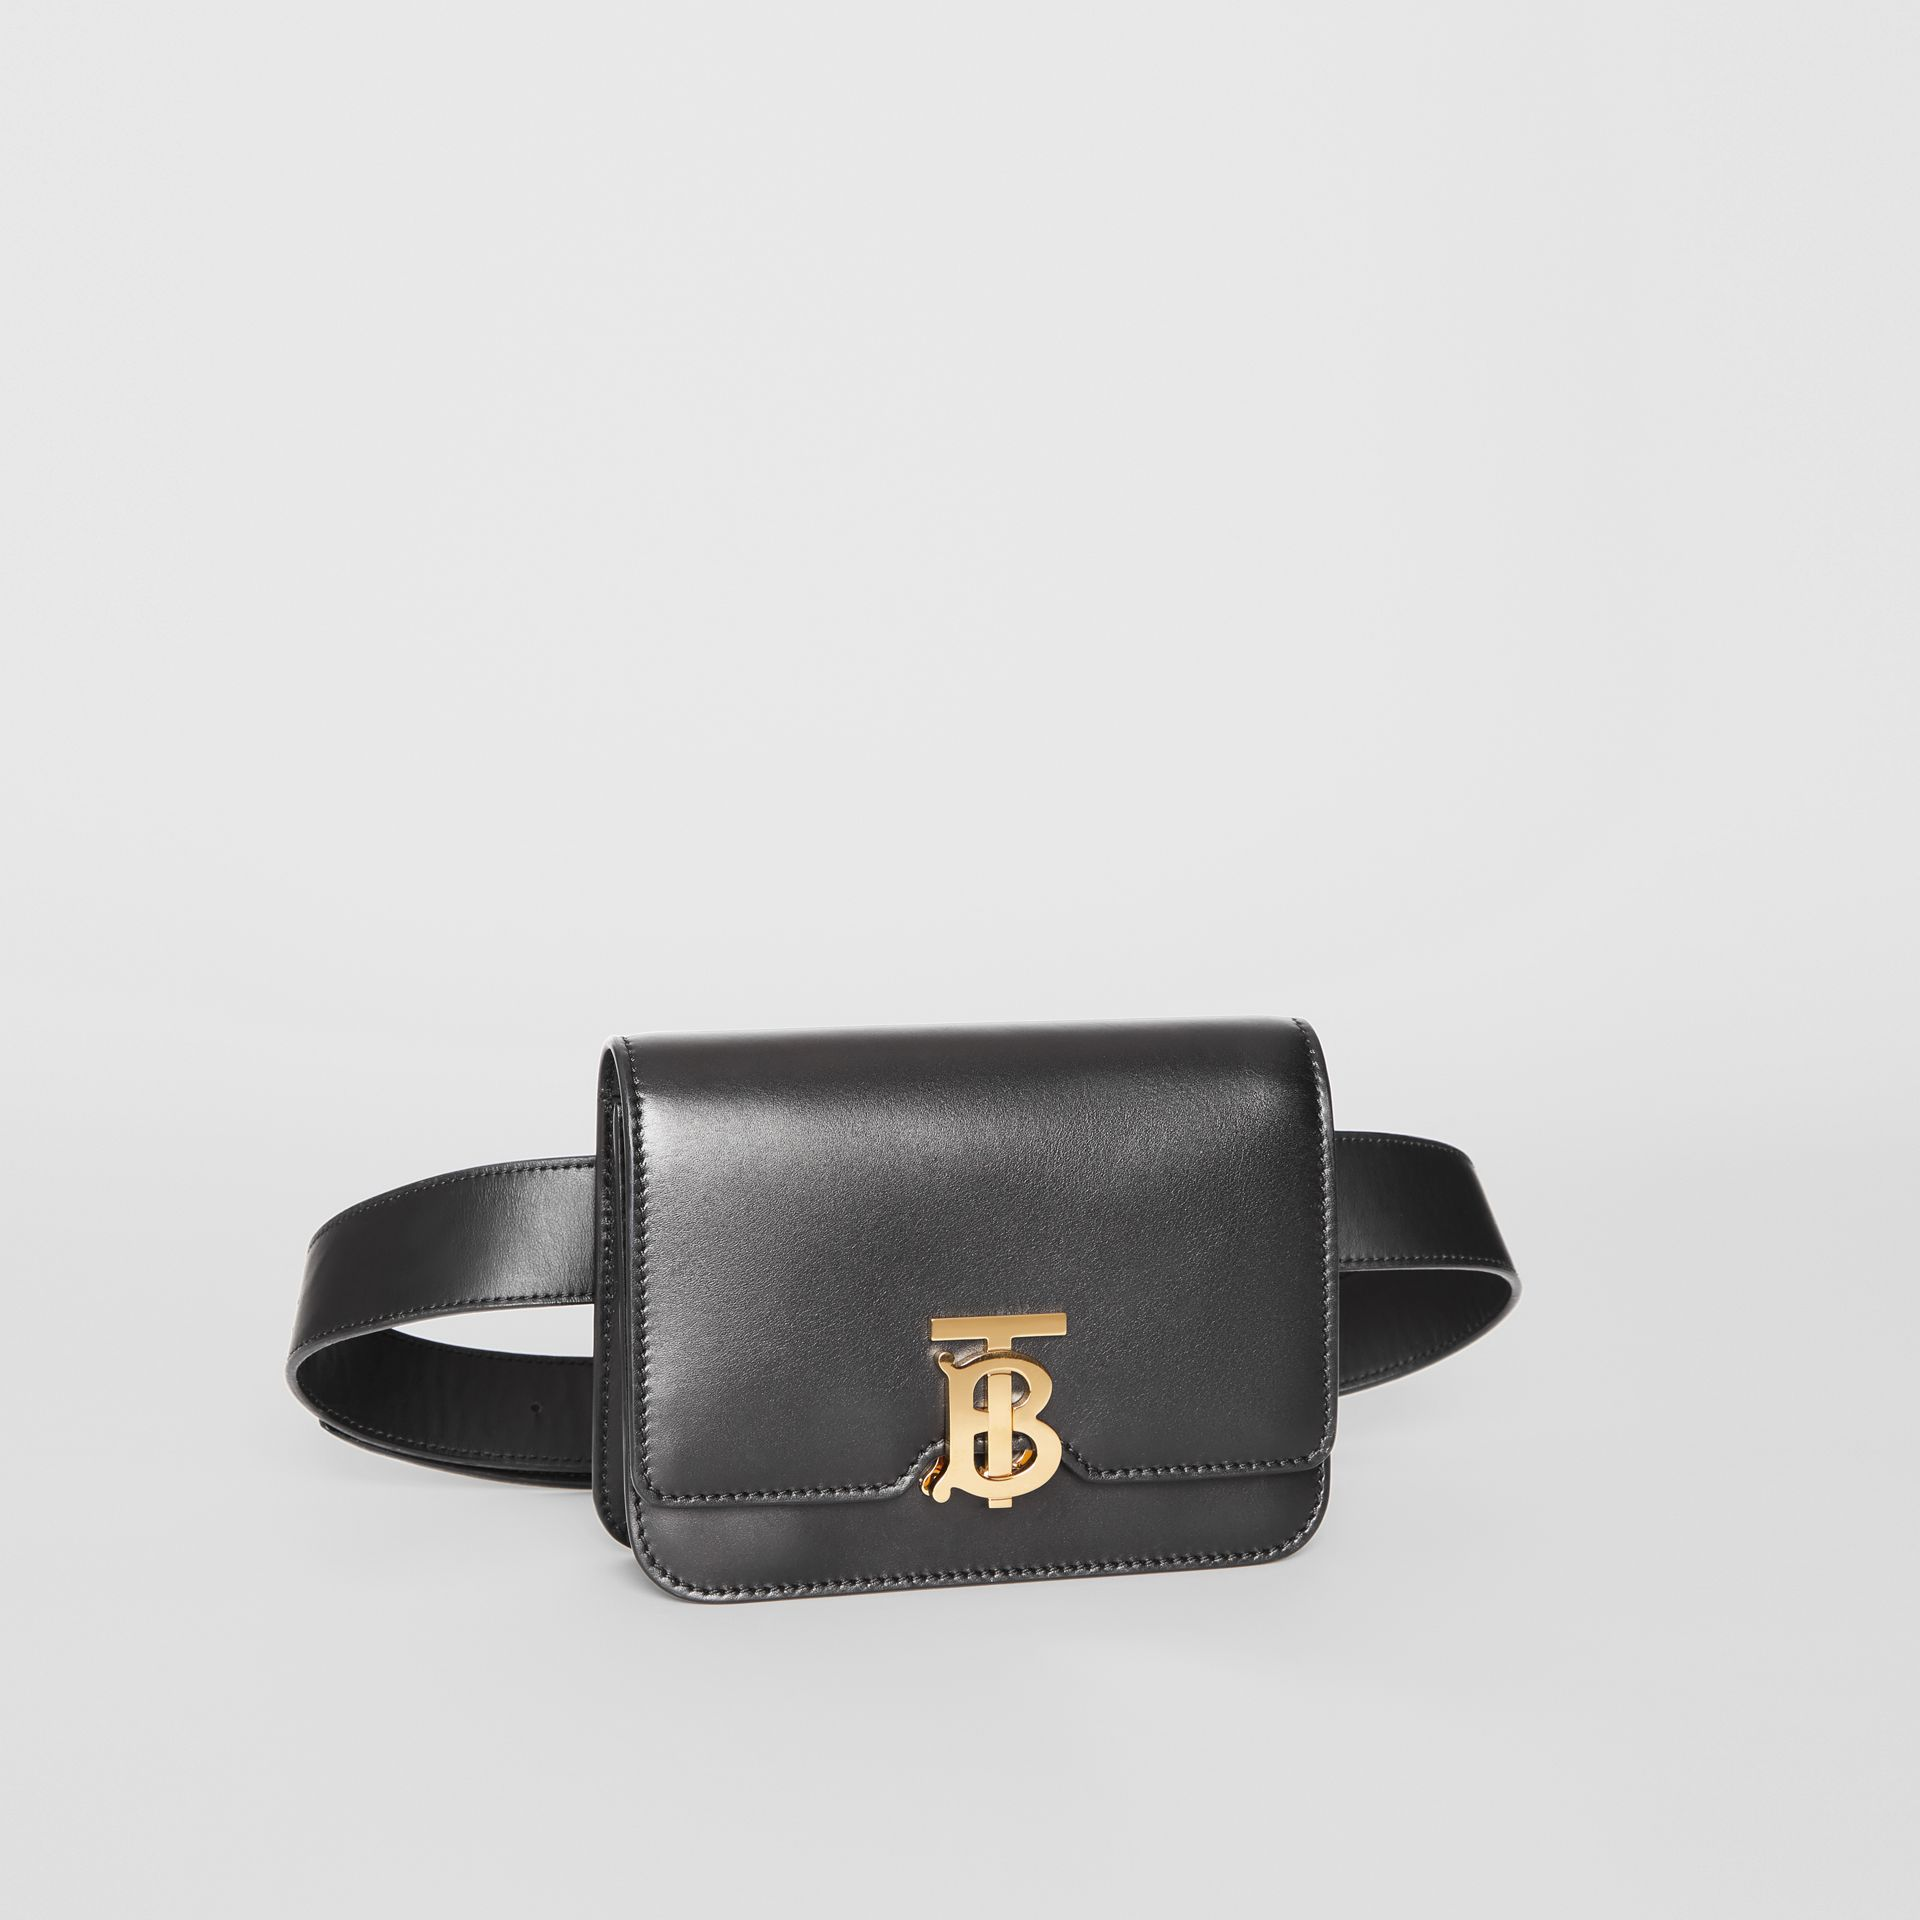 Belted Leather TB Bag in Black - Women | Burberry United States - gallery image 6